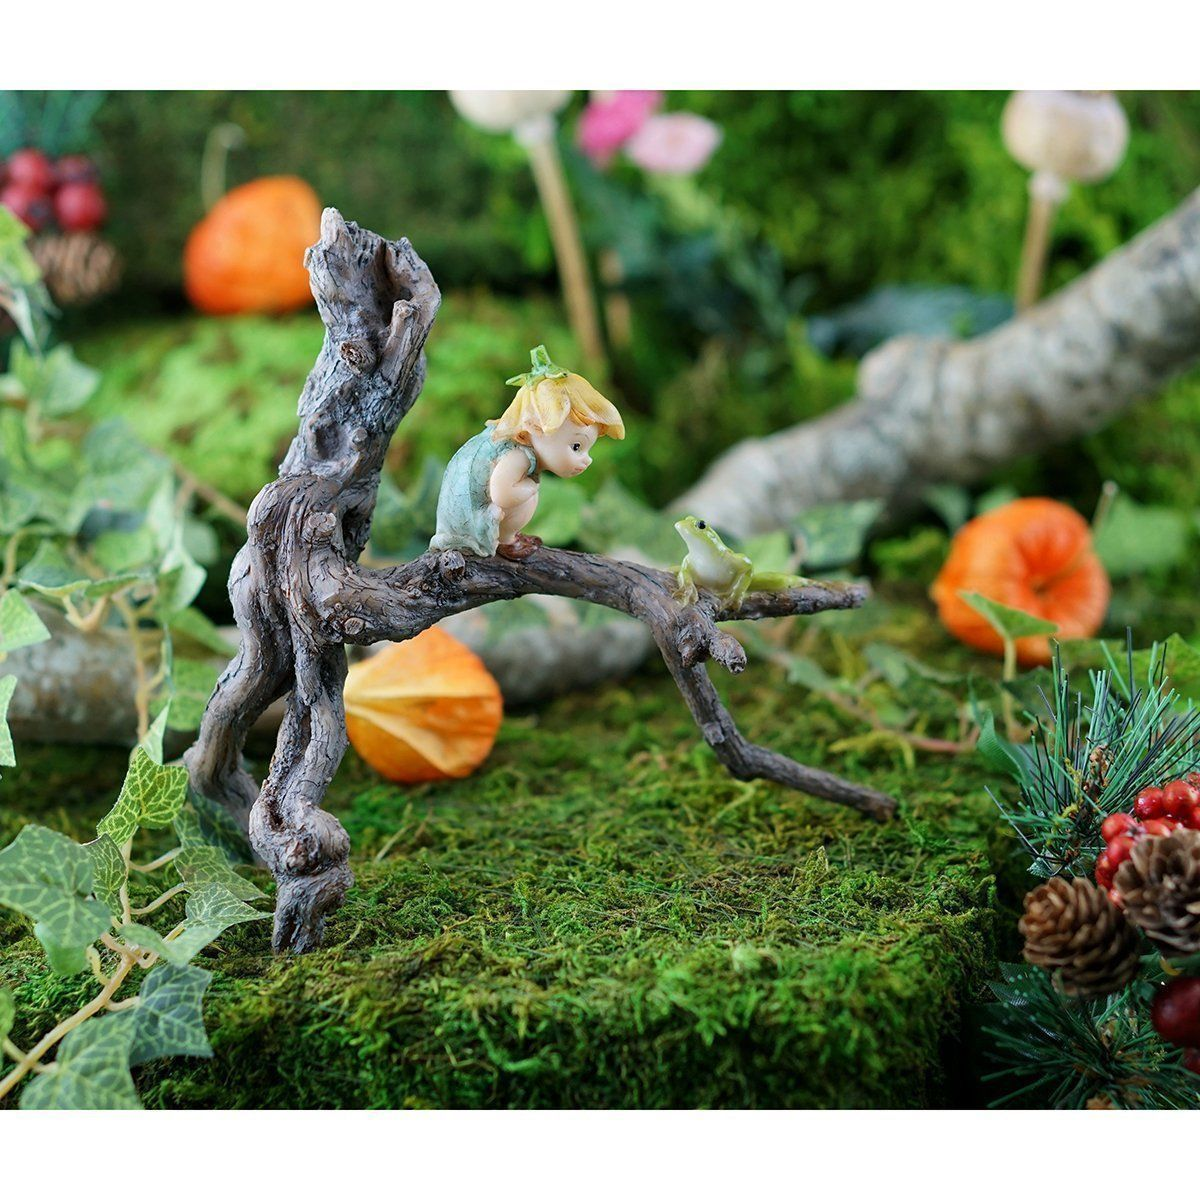 Tree frogs terrariums reptile pinterest trees frogs and tree